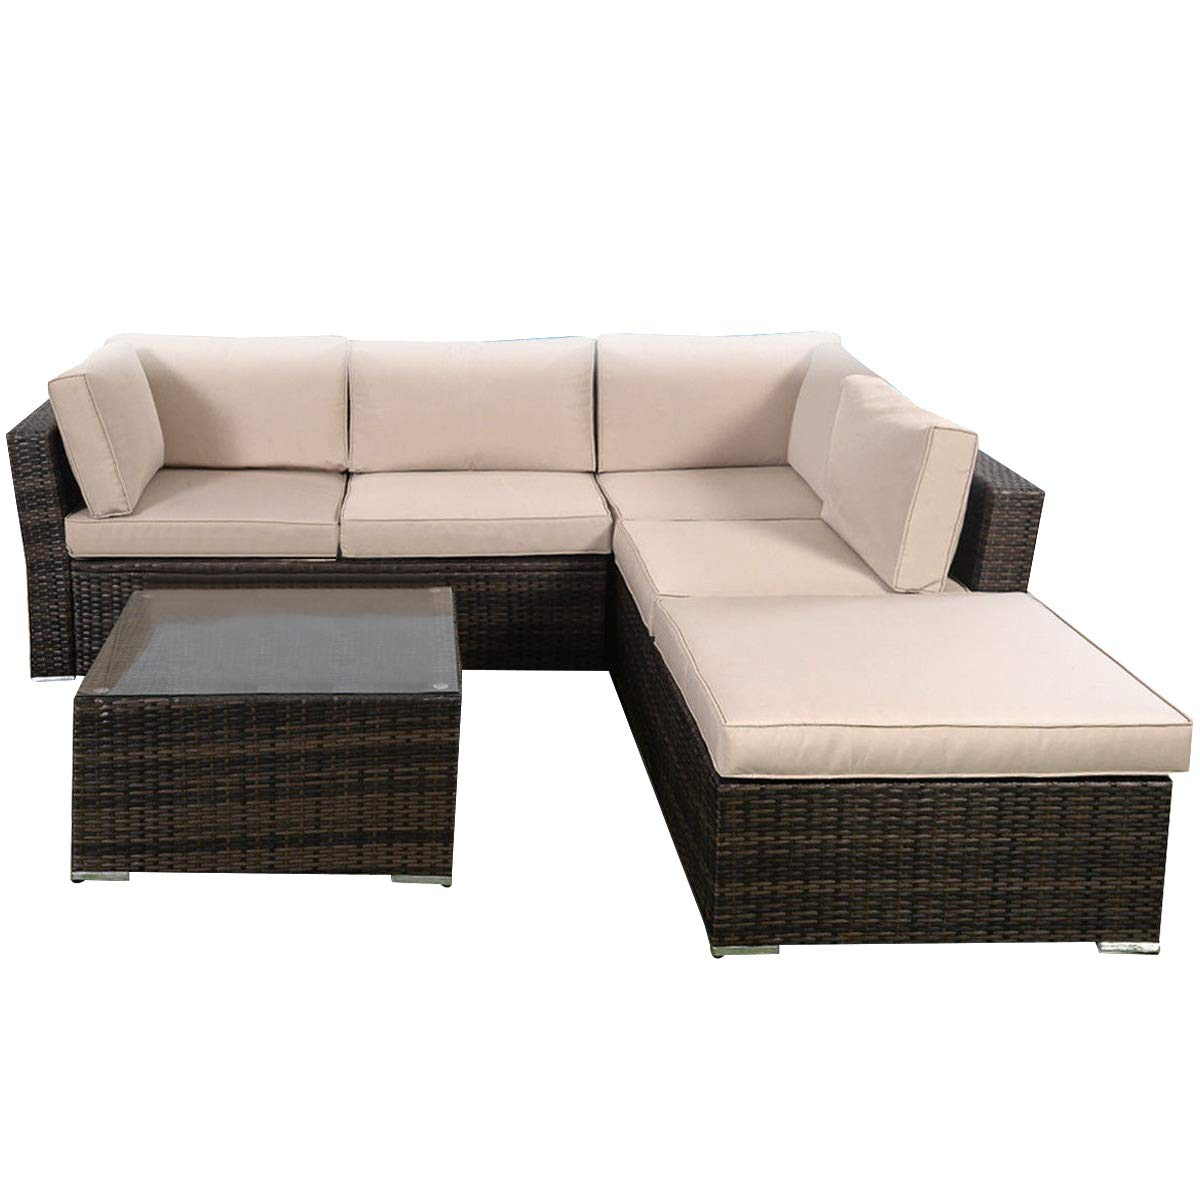 Groovy Hampton Bay Beacon Park Wicker Outdoor Loveseat With Toffee Forskolin Free Trial Chair Design Images Forskolin Free Trialorg